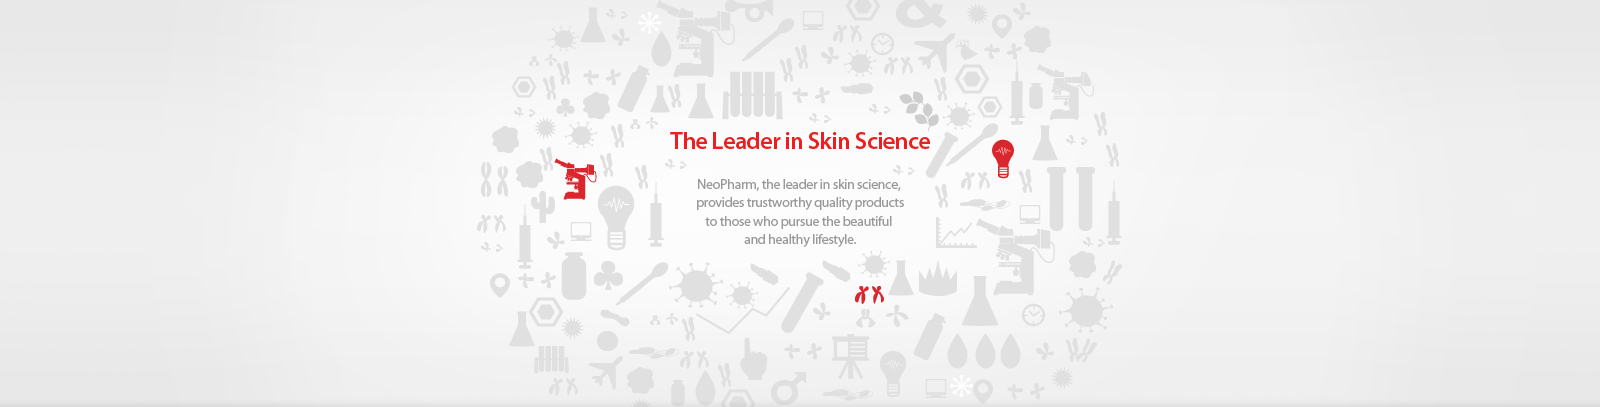 The Leader in Skin Science